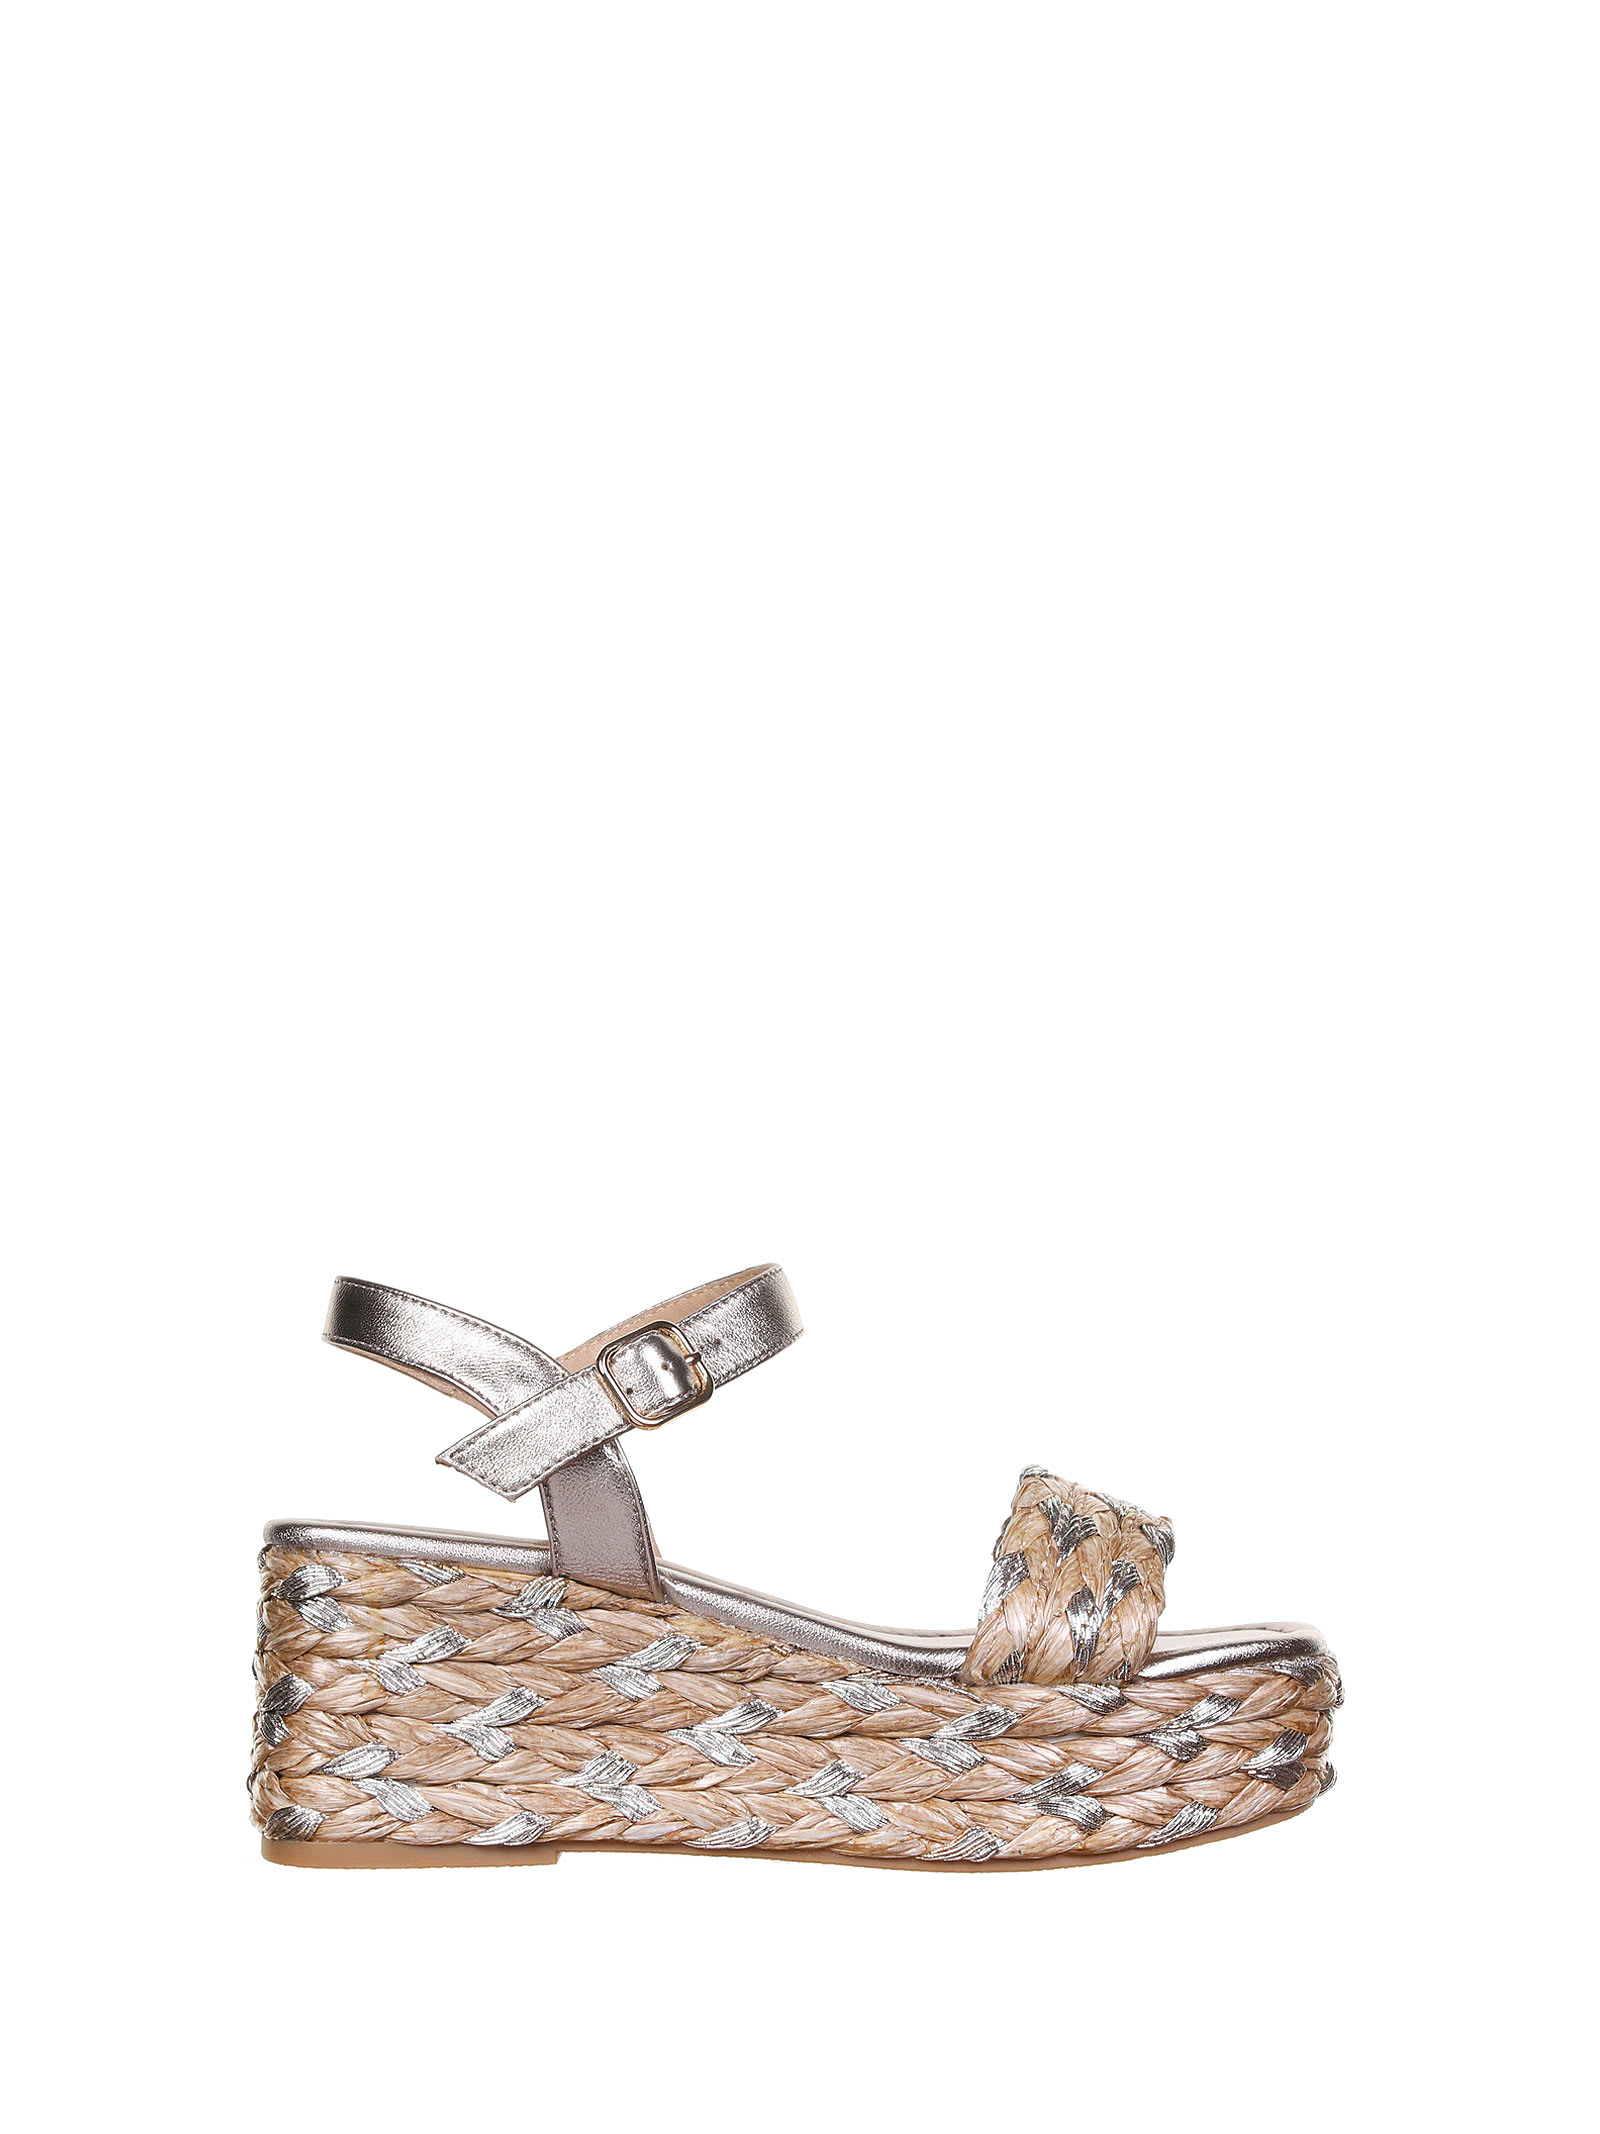 Multicolored Wedge Sandals